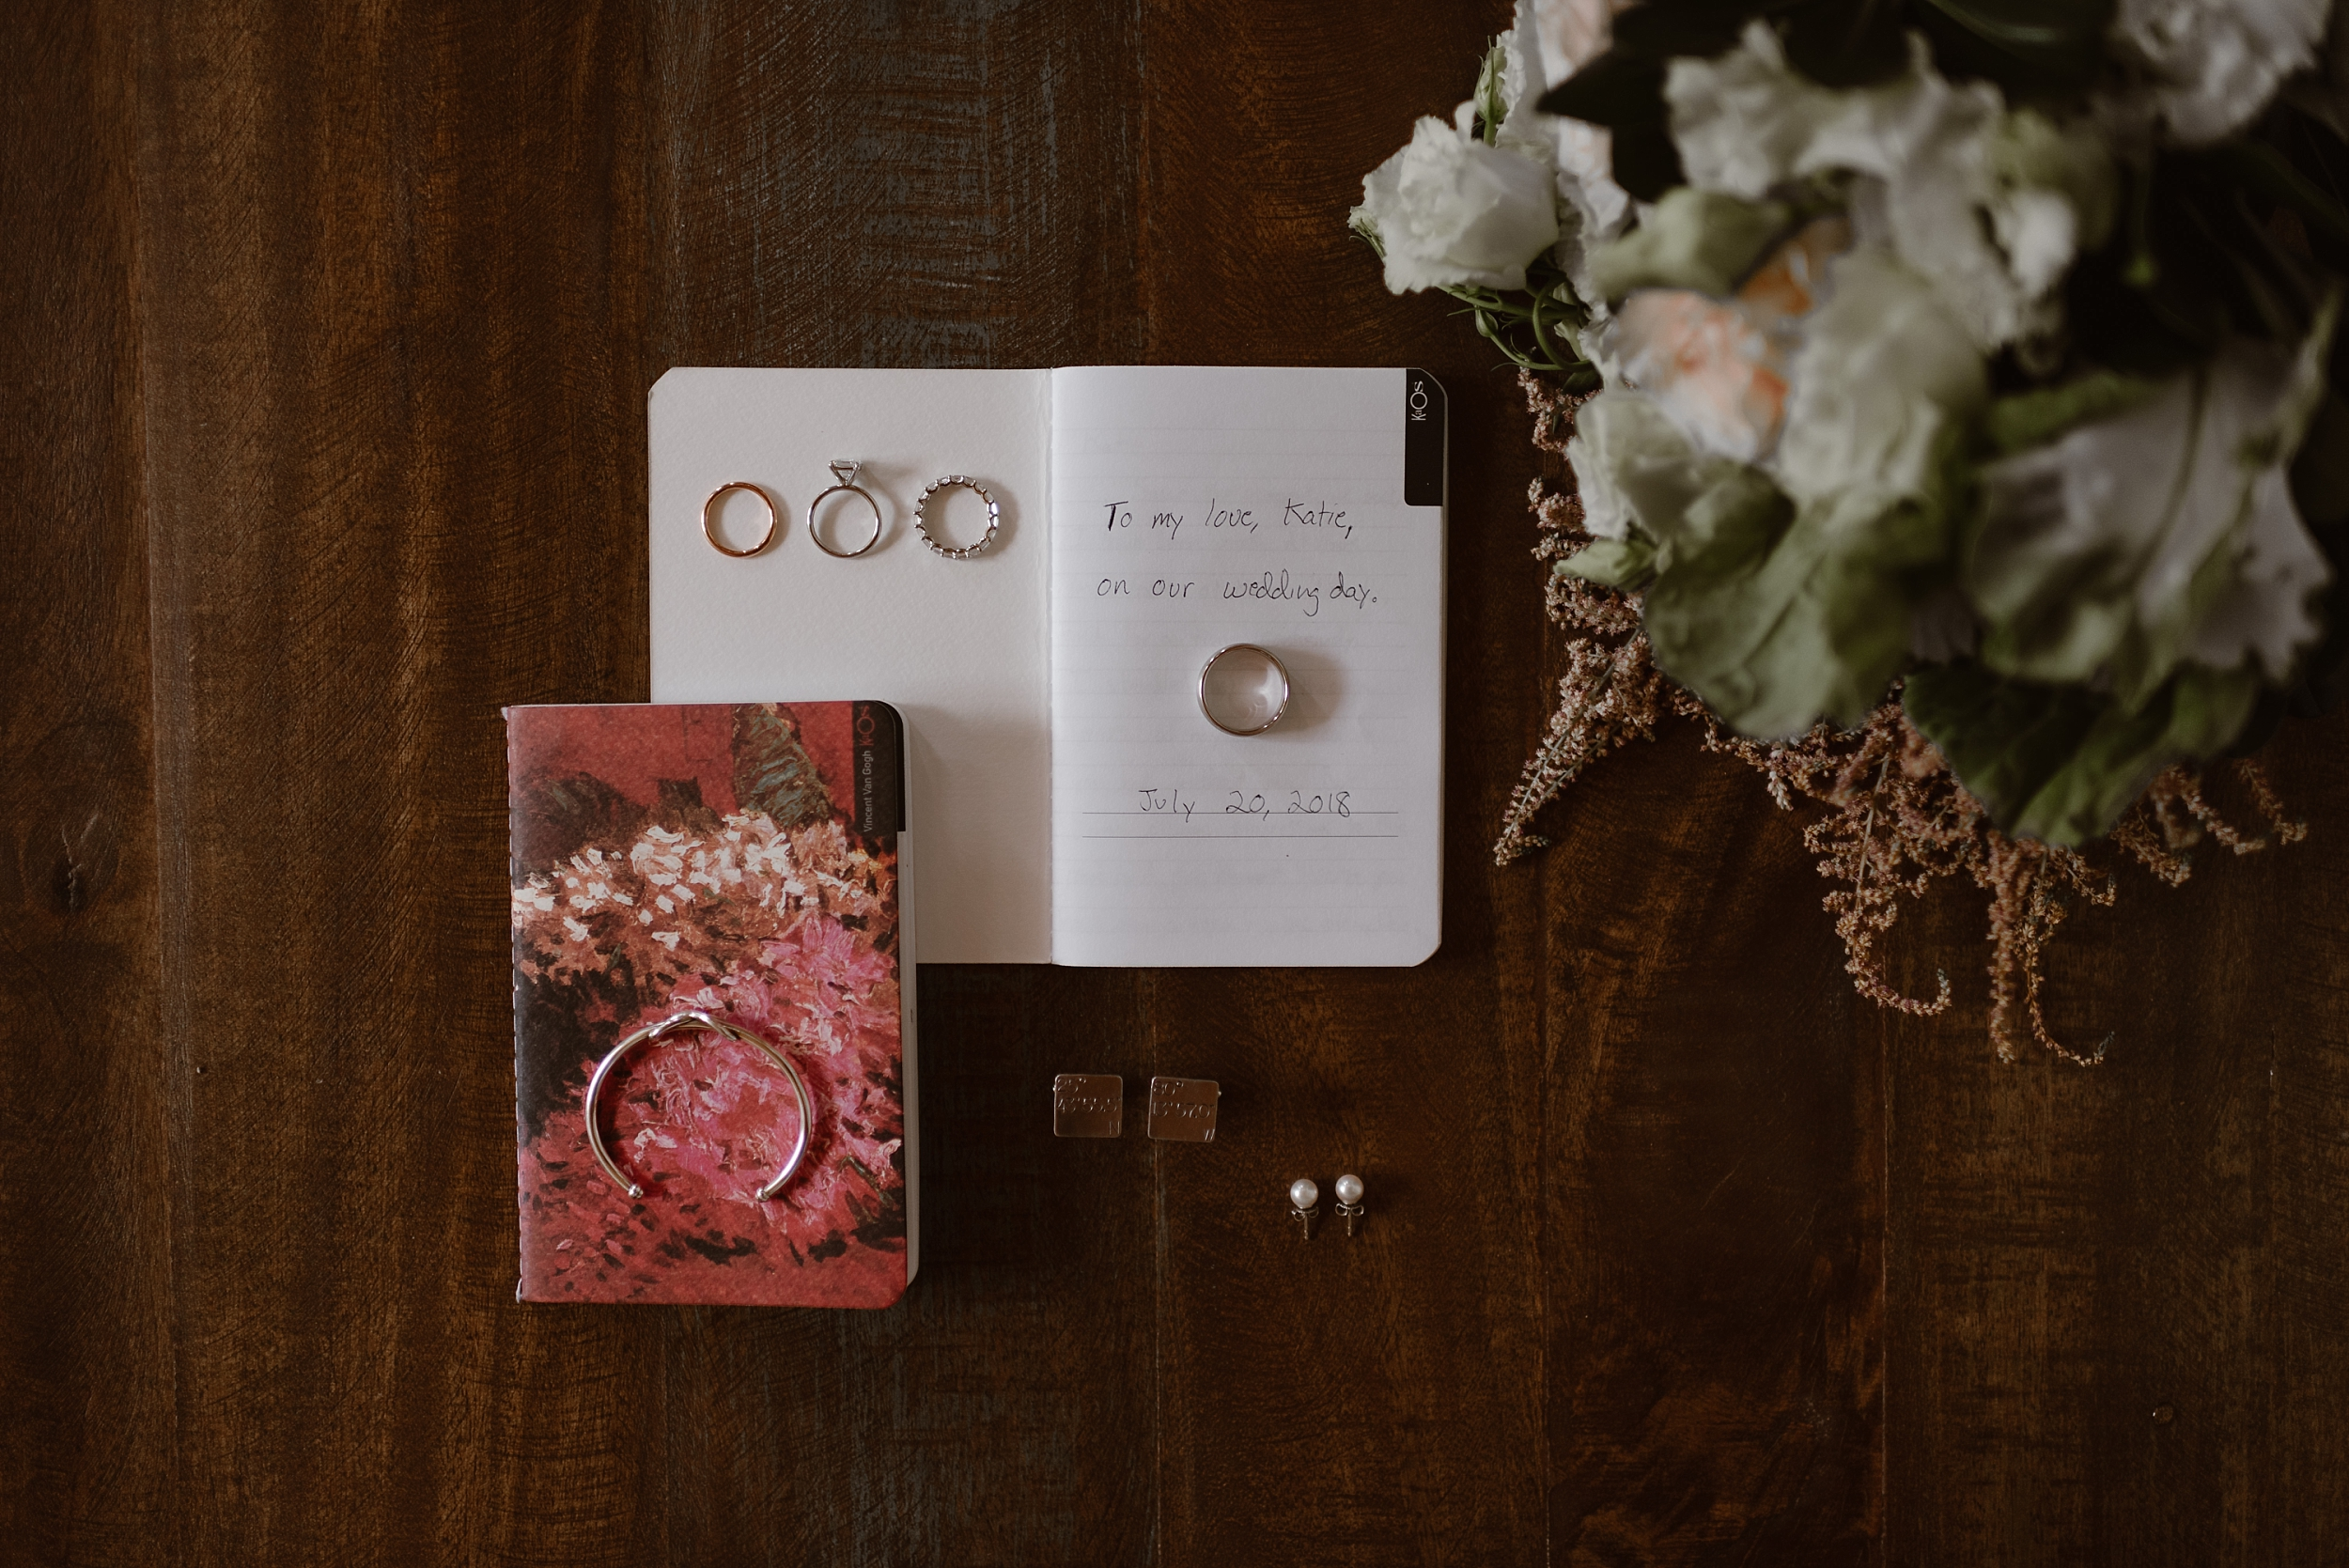 """On a wooded table, a vow book sits open with the words """"to my love, Katie, on our wedding day. July 20, 2018."""" On the open pages of the book sit four rings. On the table below the book, pearl earrings and engraved cuff links rest while they await their prat in the elopement ceremony."""